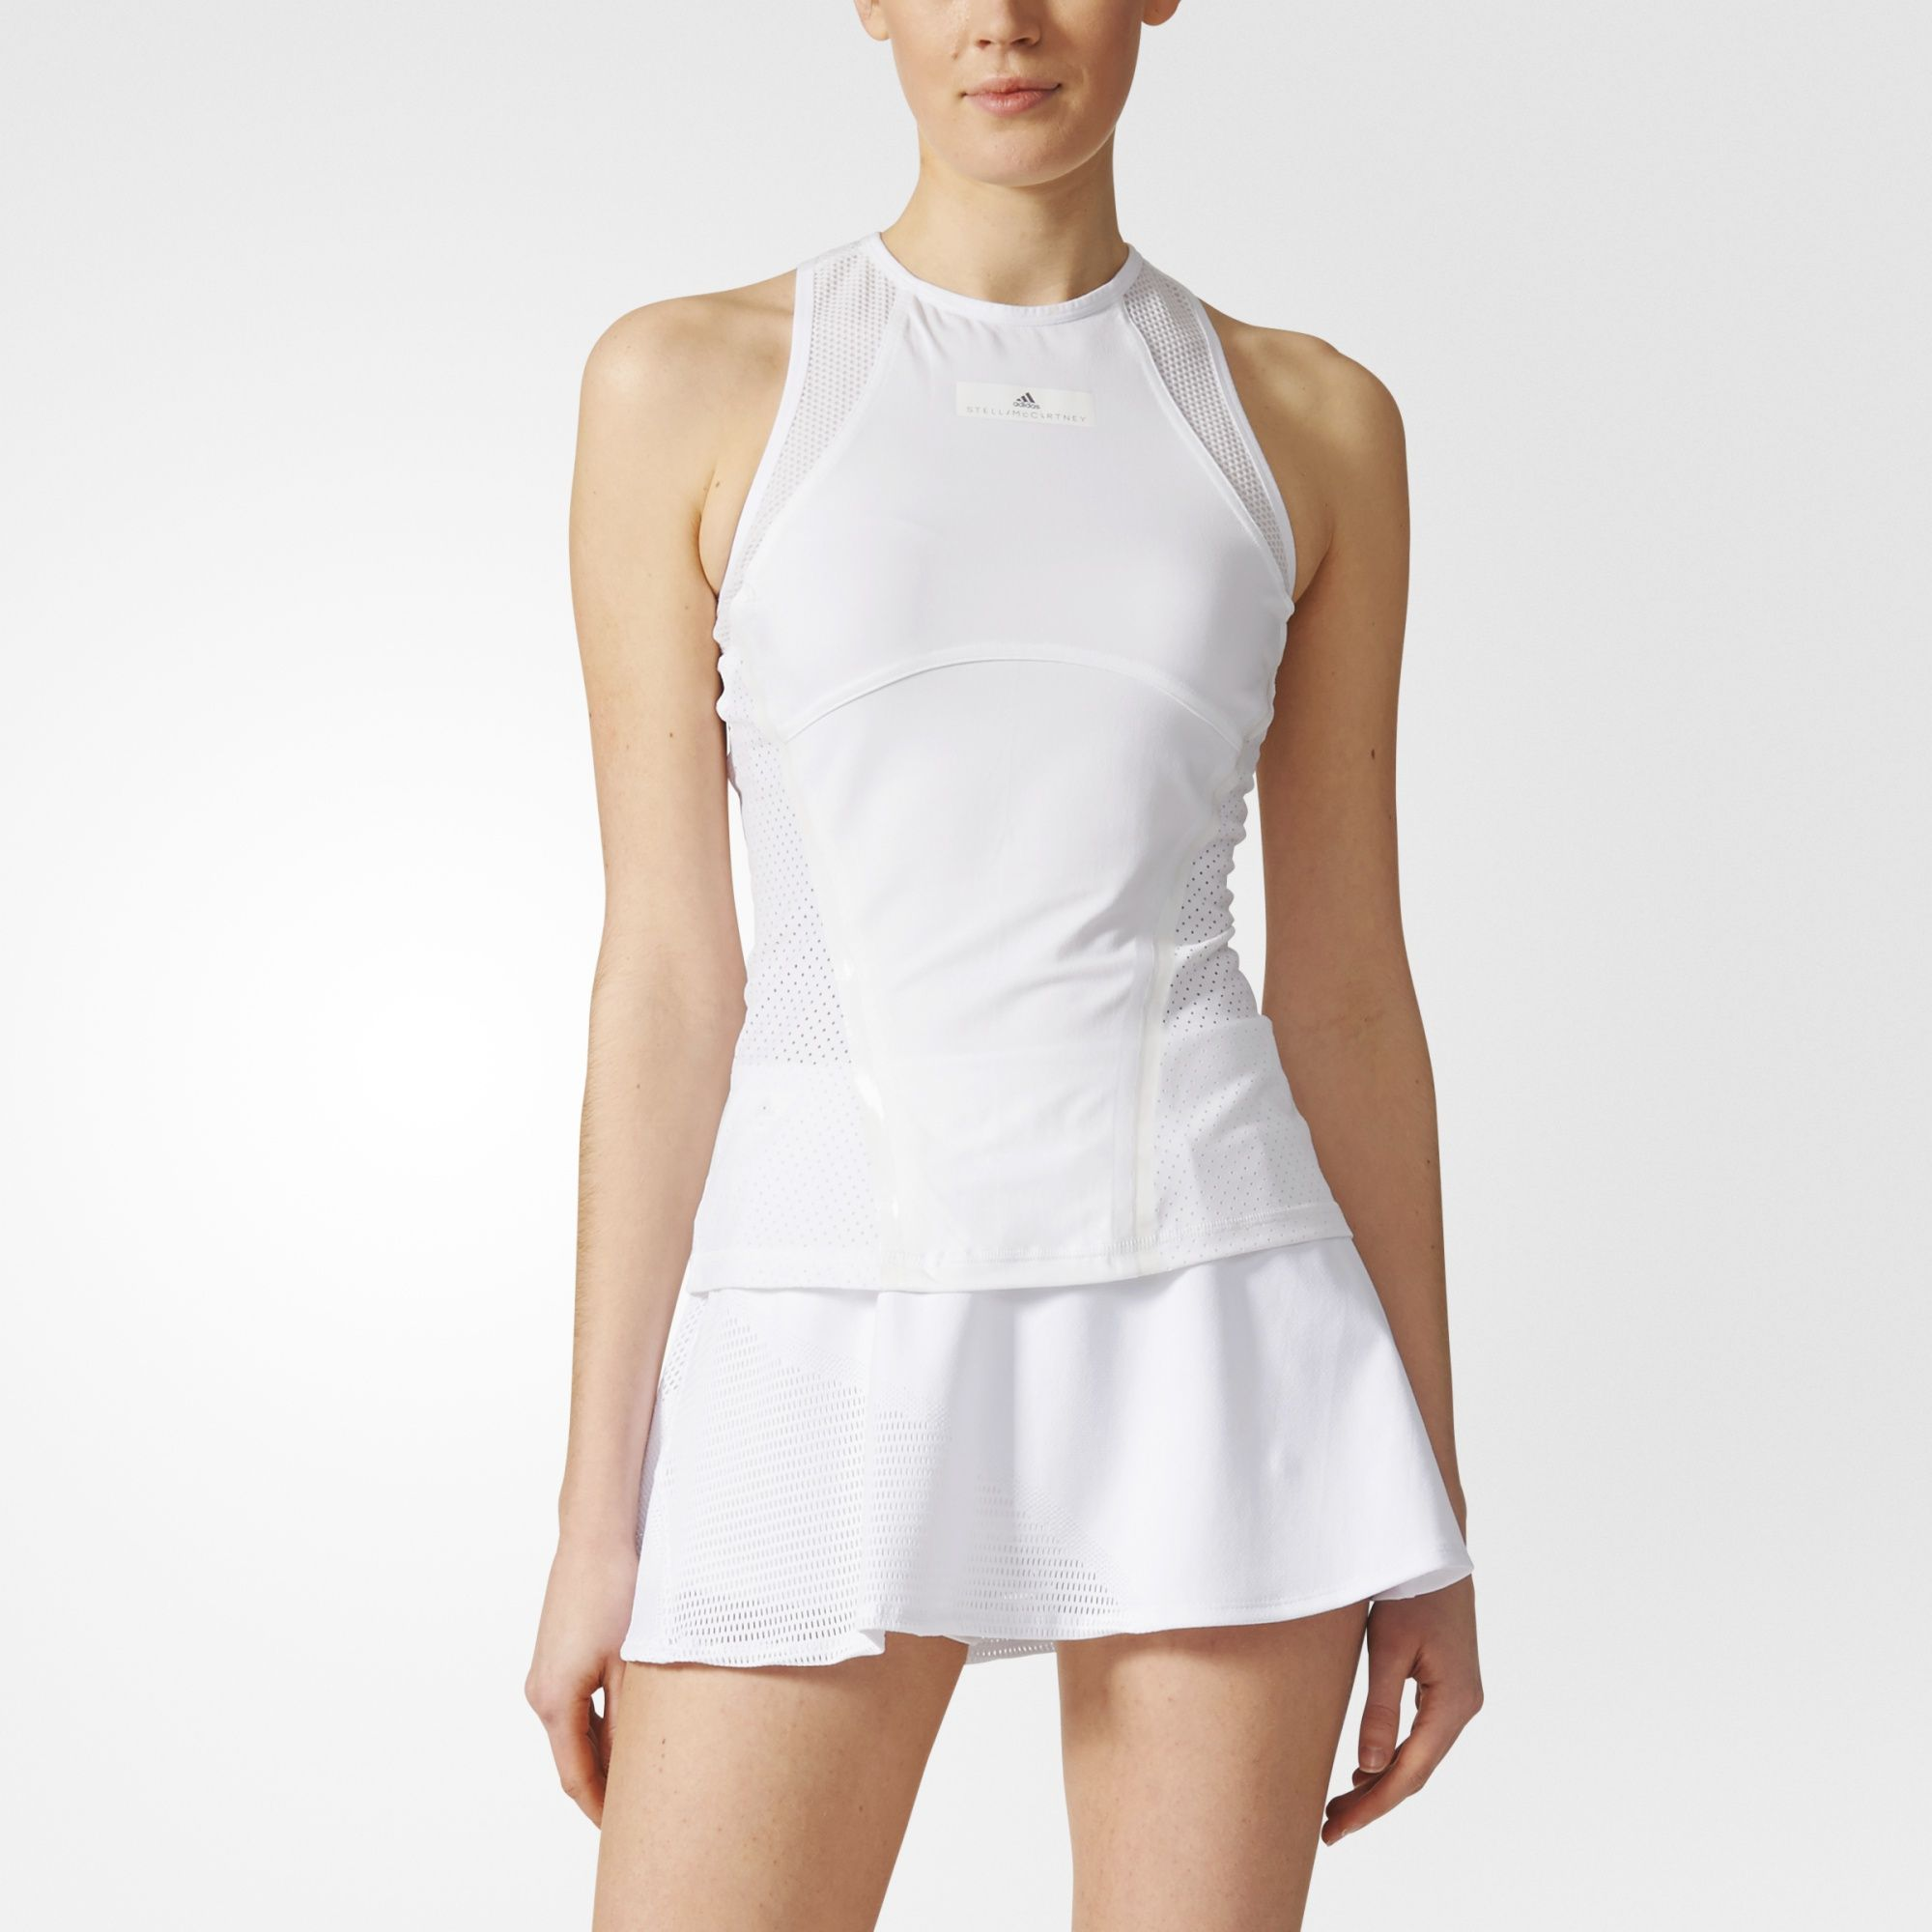 The adidas by Stella McCartney tennis collection combines technical performance with the exceptional feminine tailoring for which Stella is known and loved. A style worn by tennis pros Caroline Wozniacki and Garbiñe Muguruza, this Barricade Tank Top is made of breathable, quick-drying tricot to help you stay cool and dry. Open mesh targets extra airflow where you need it.